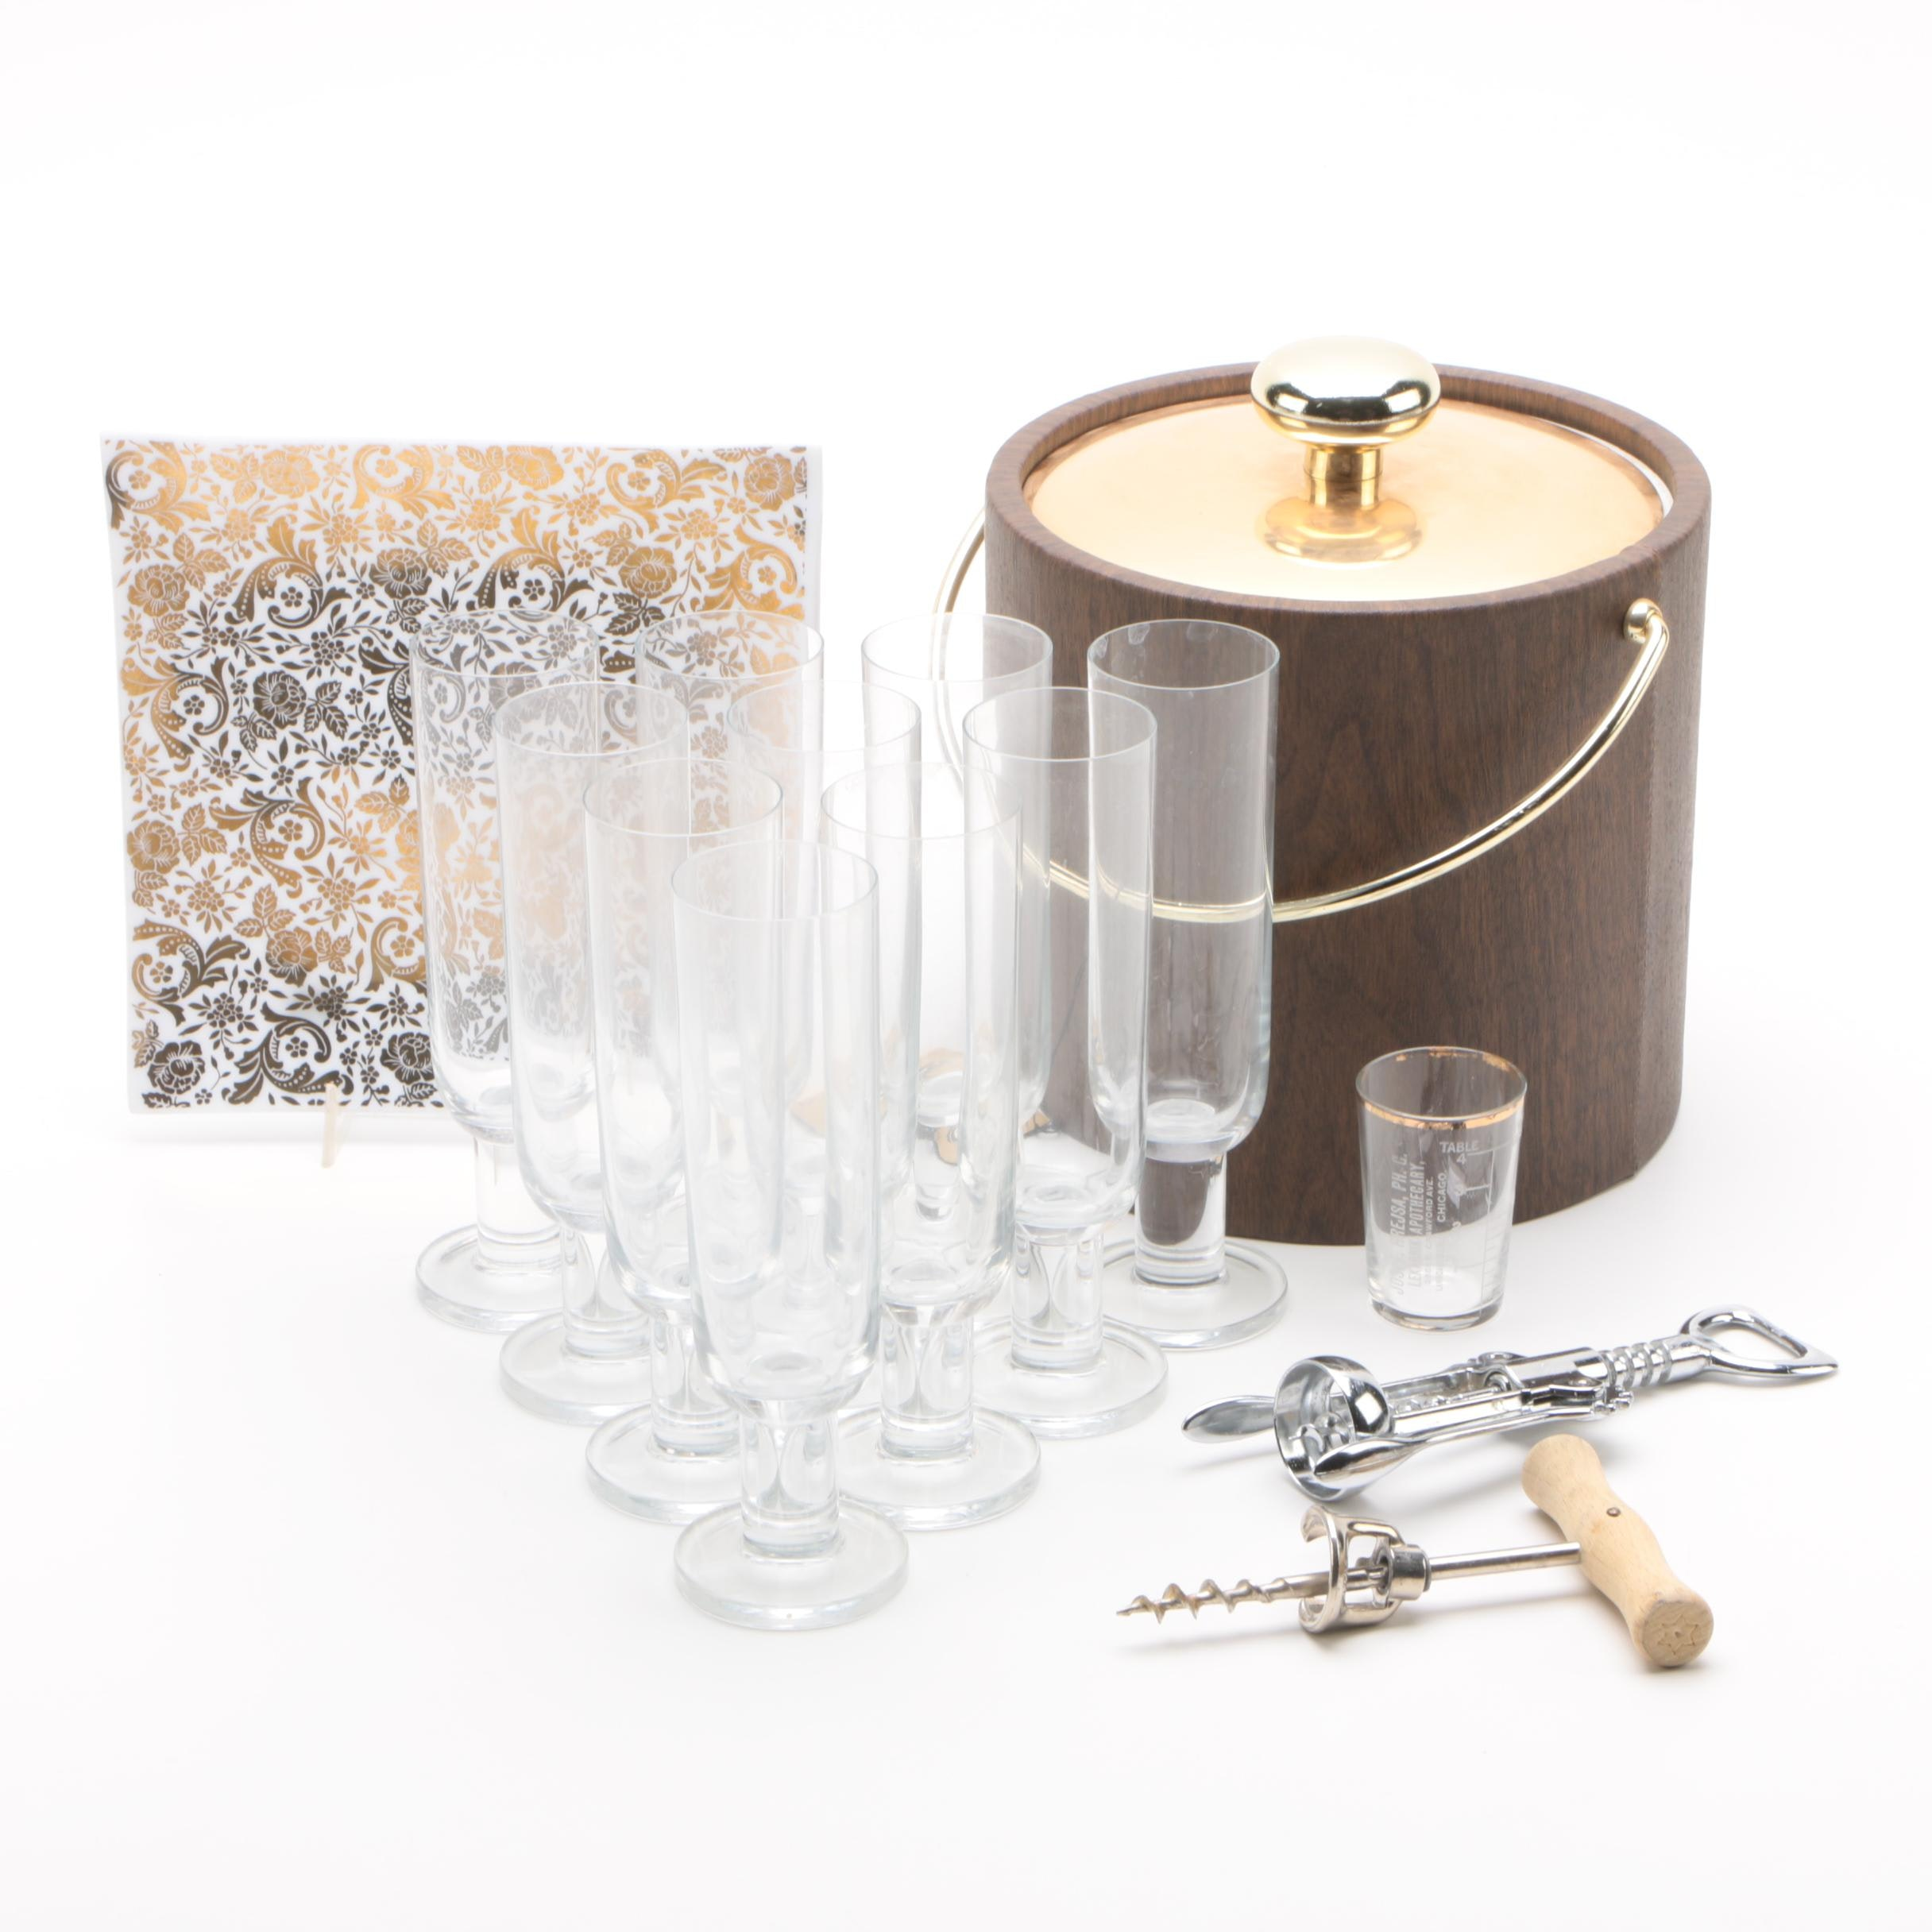 Mid Century Bar Accessories and Stemware Featuring Kraftware and Georges Briard